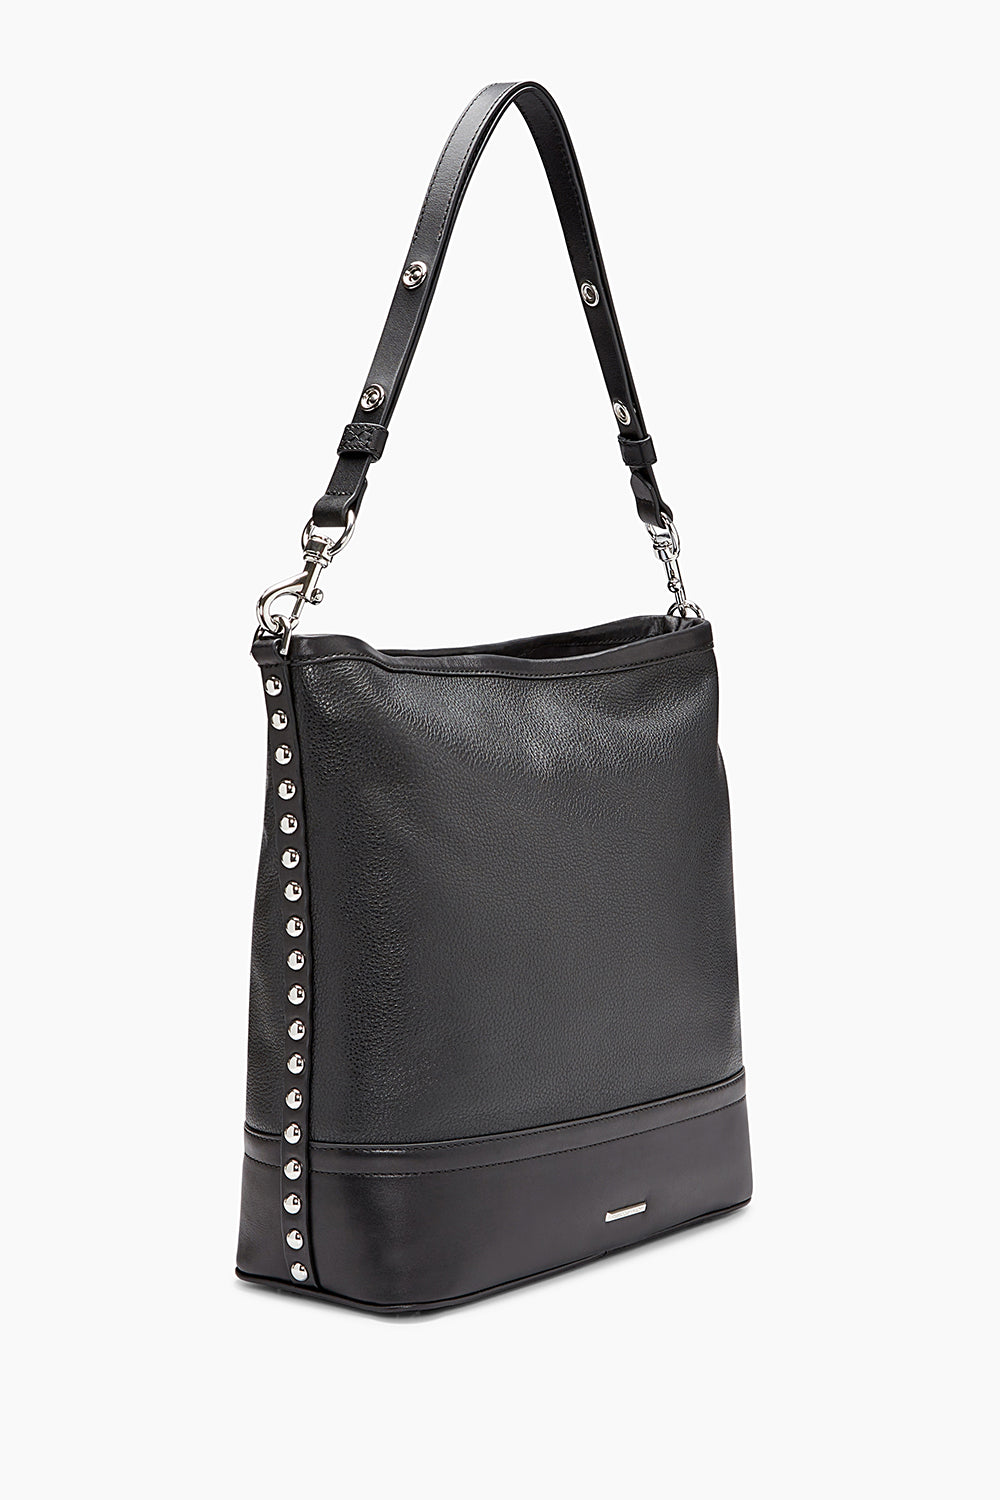 Rebecca Minkoff Blythe Large Convertible Hobo Bag p7BnsIdUS